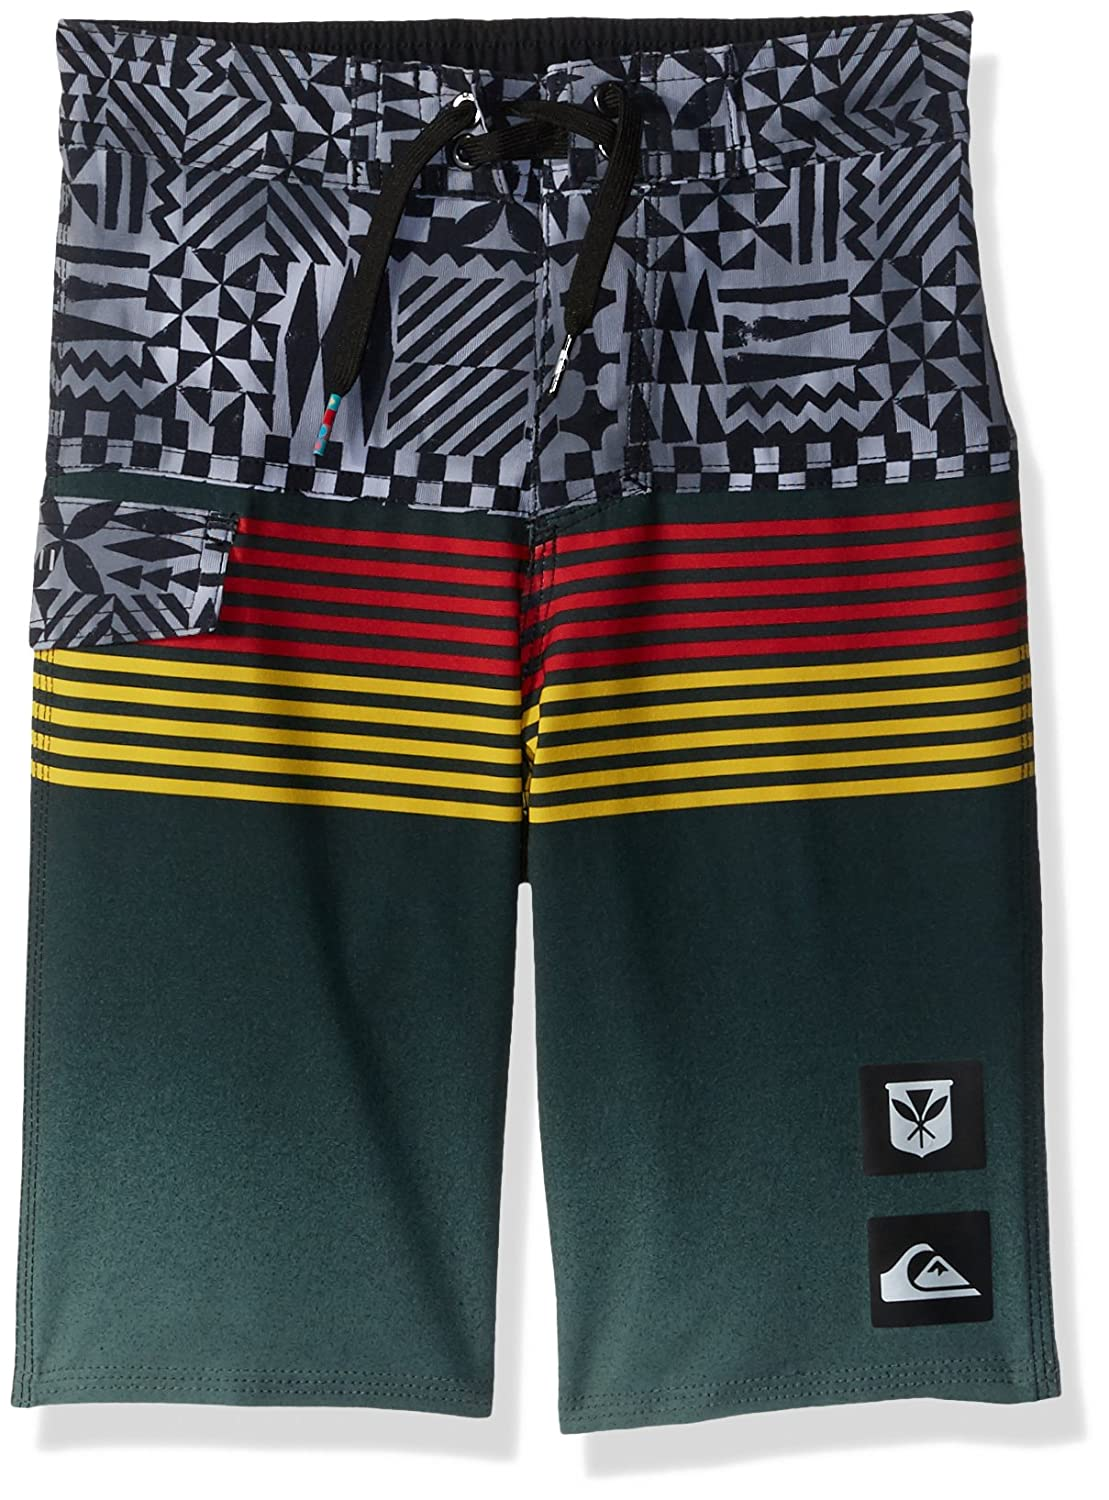 Quiksilver Boys' Little Highline Division Hawaii Youth Boardshort Swim Trunk